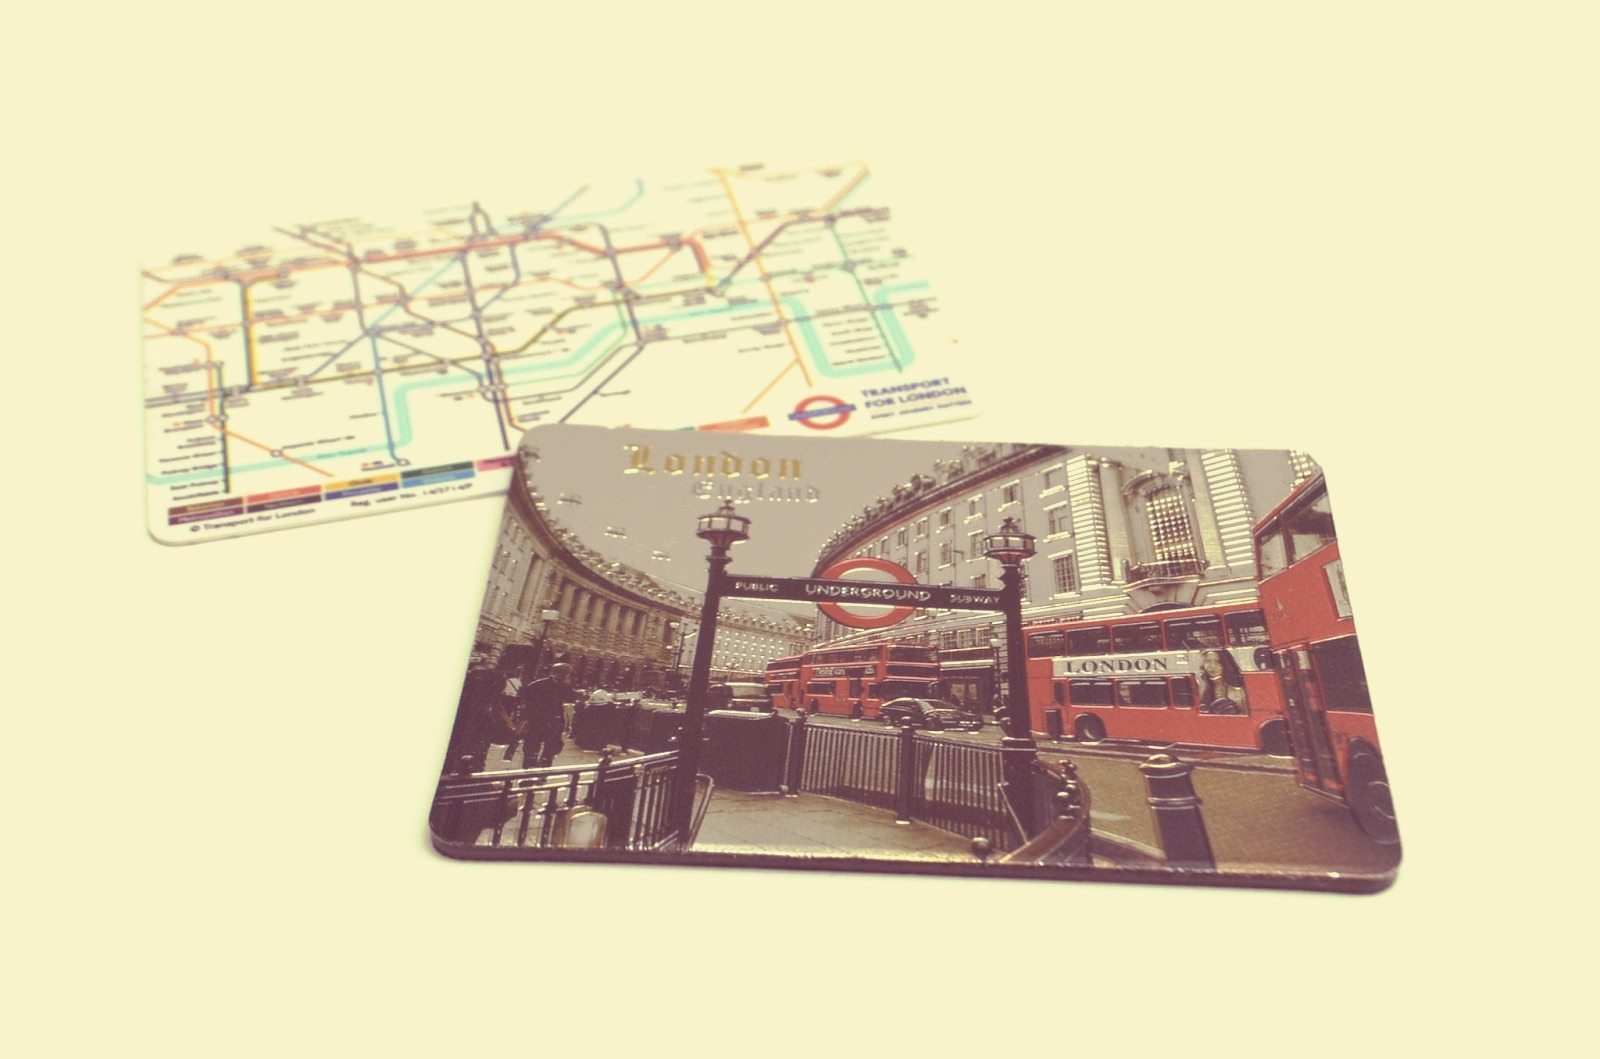 London Underground fridge magnet